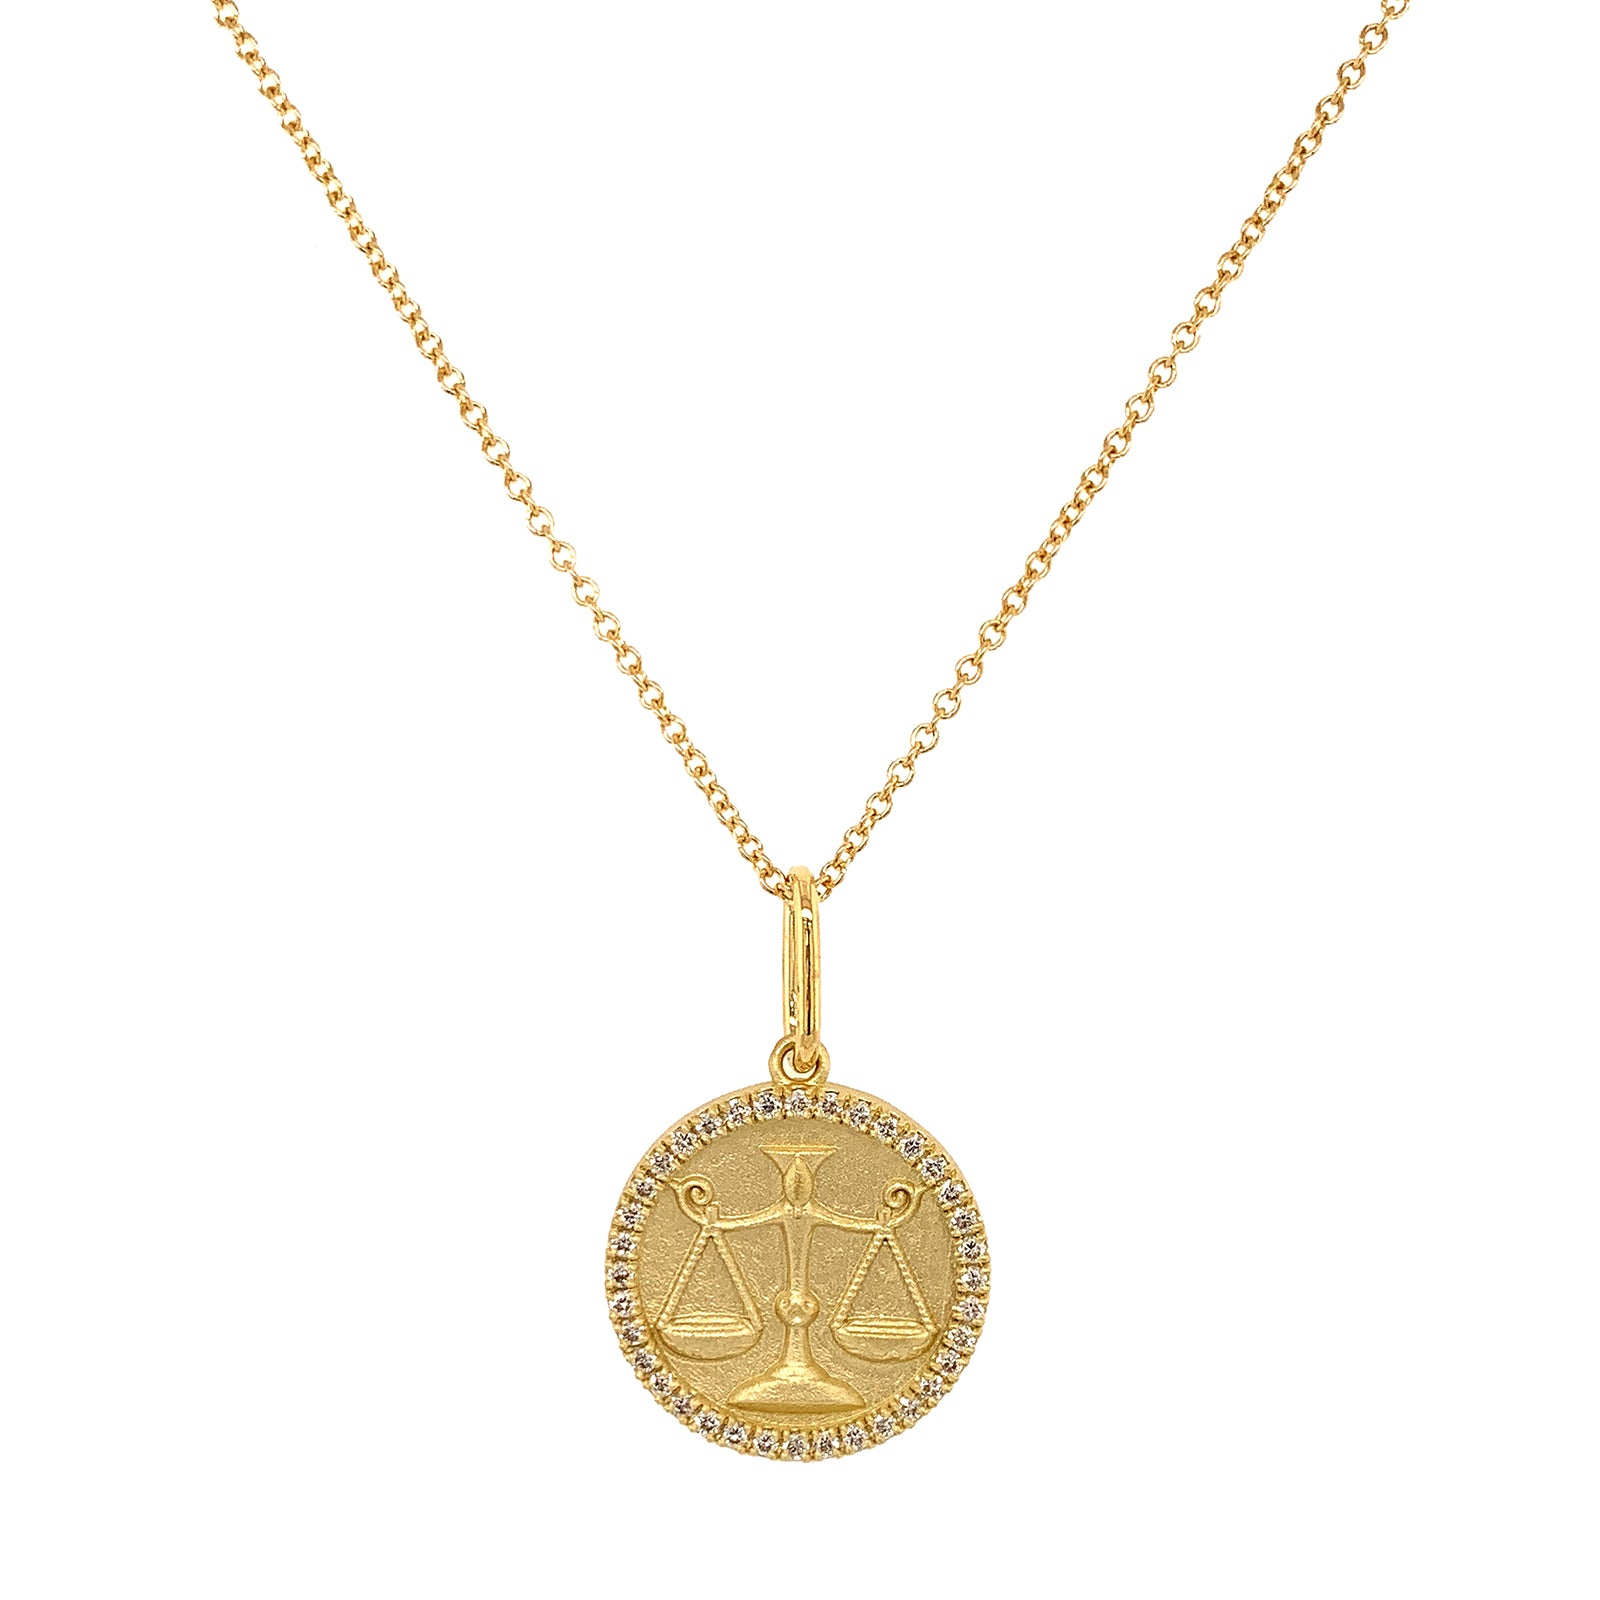 Colette Zodiac Necklace - Libra - Necklaces - Broken English Jewelry